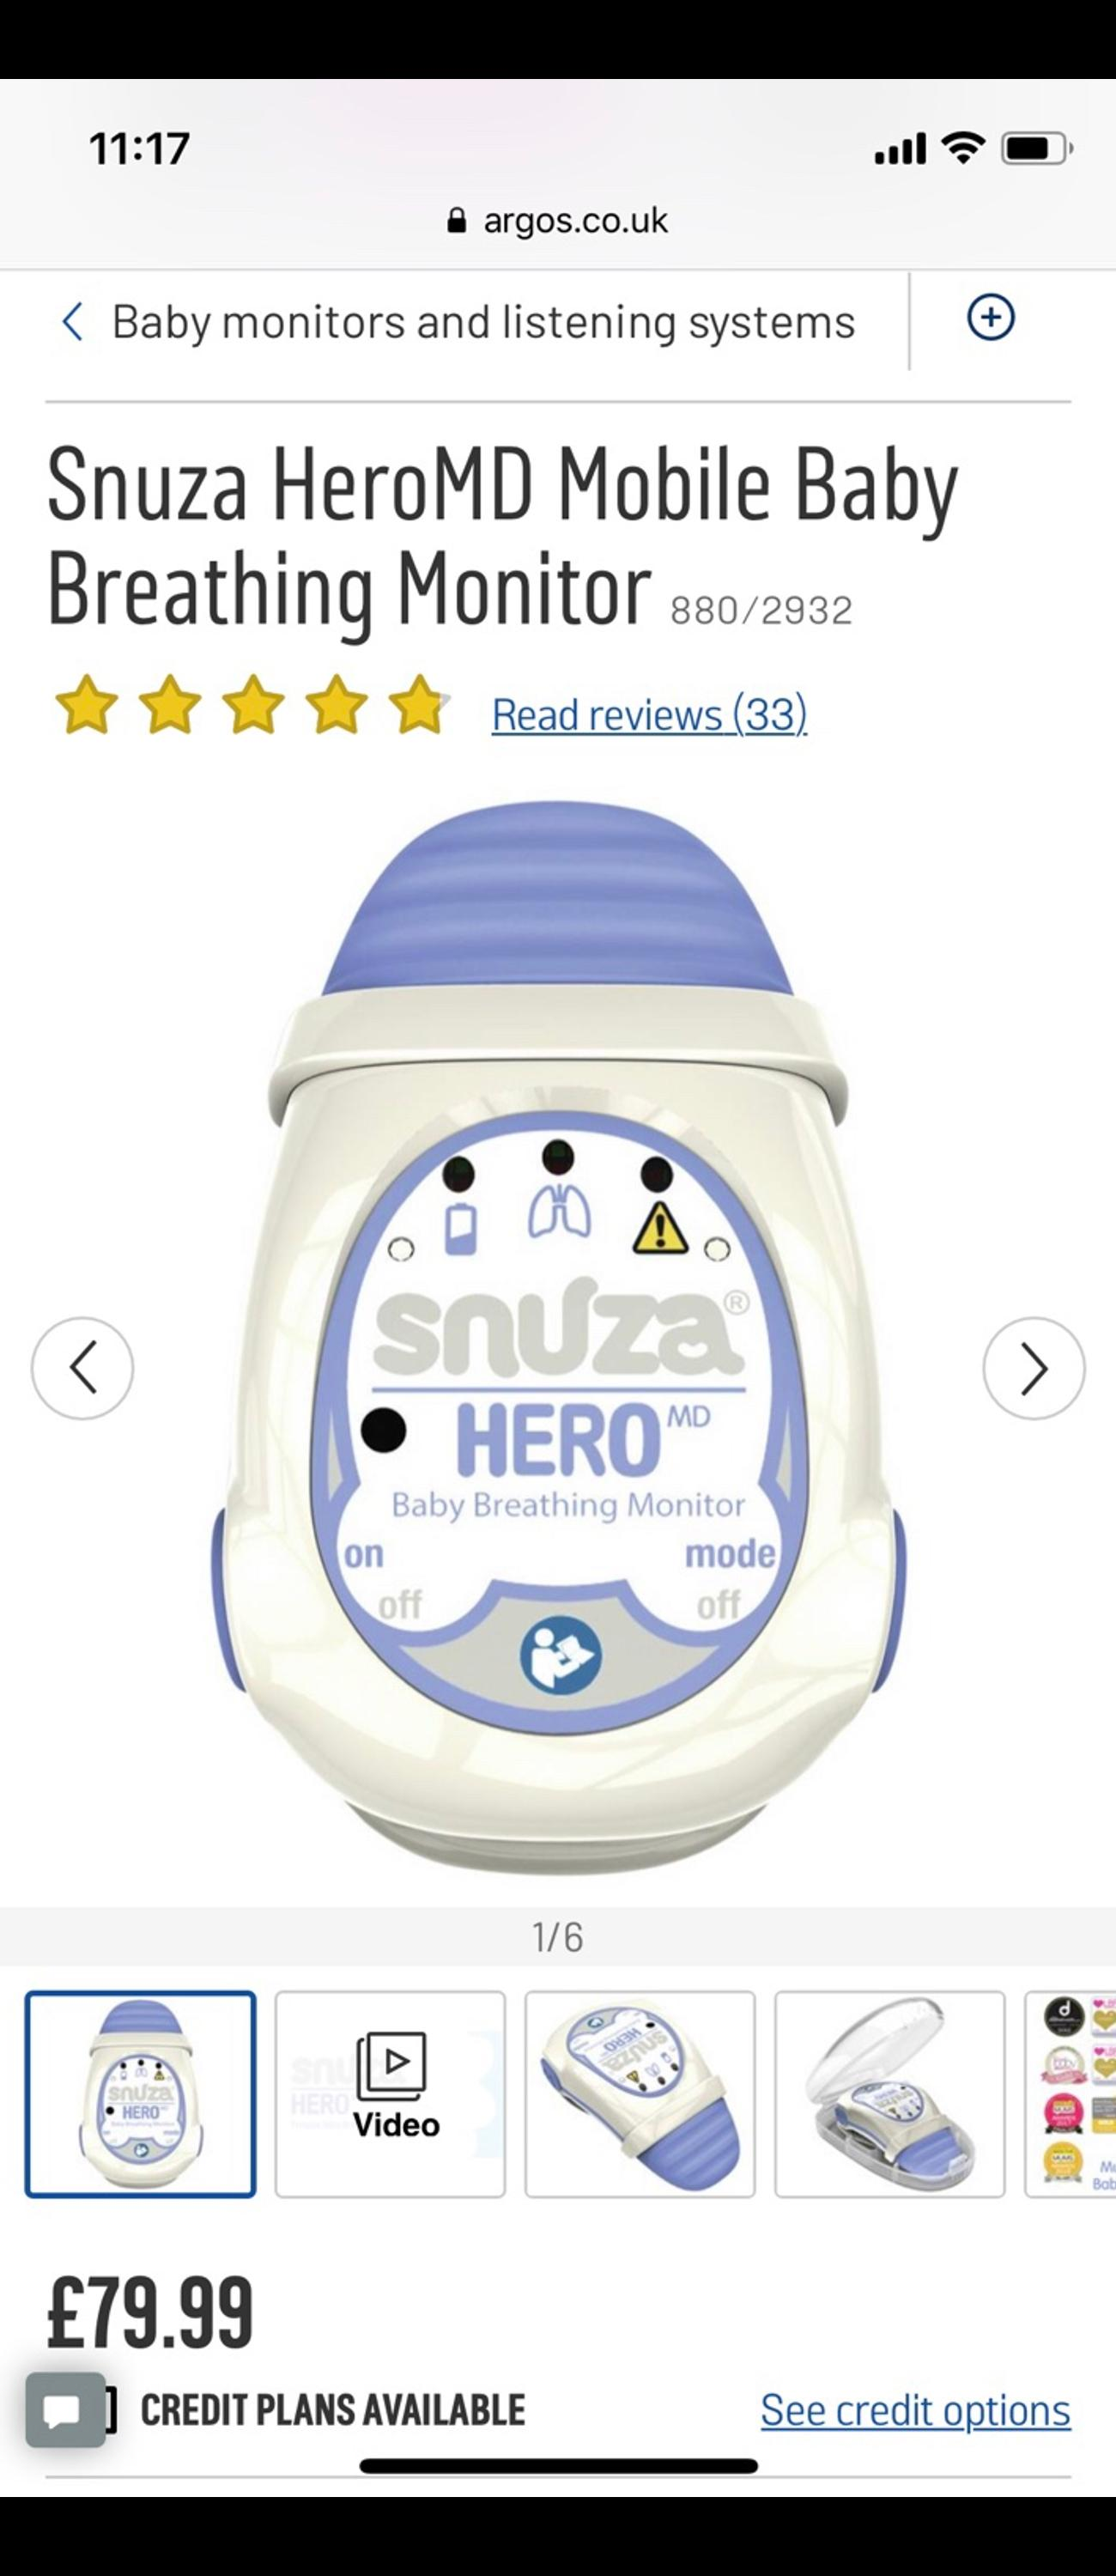 Portable Baby Breathing Monitor Medically Certified Snuza Hero MD